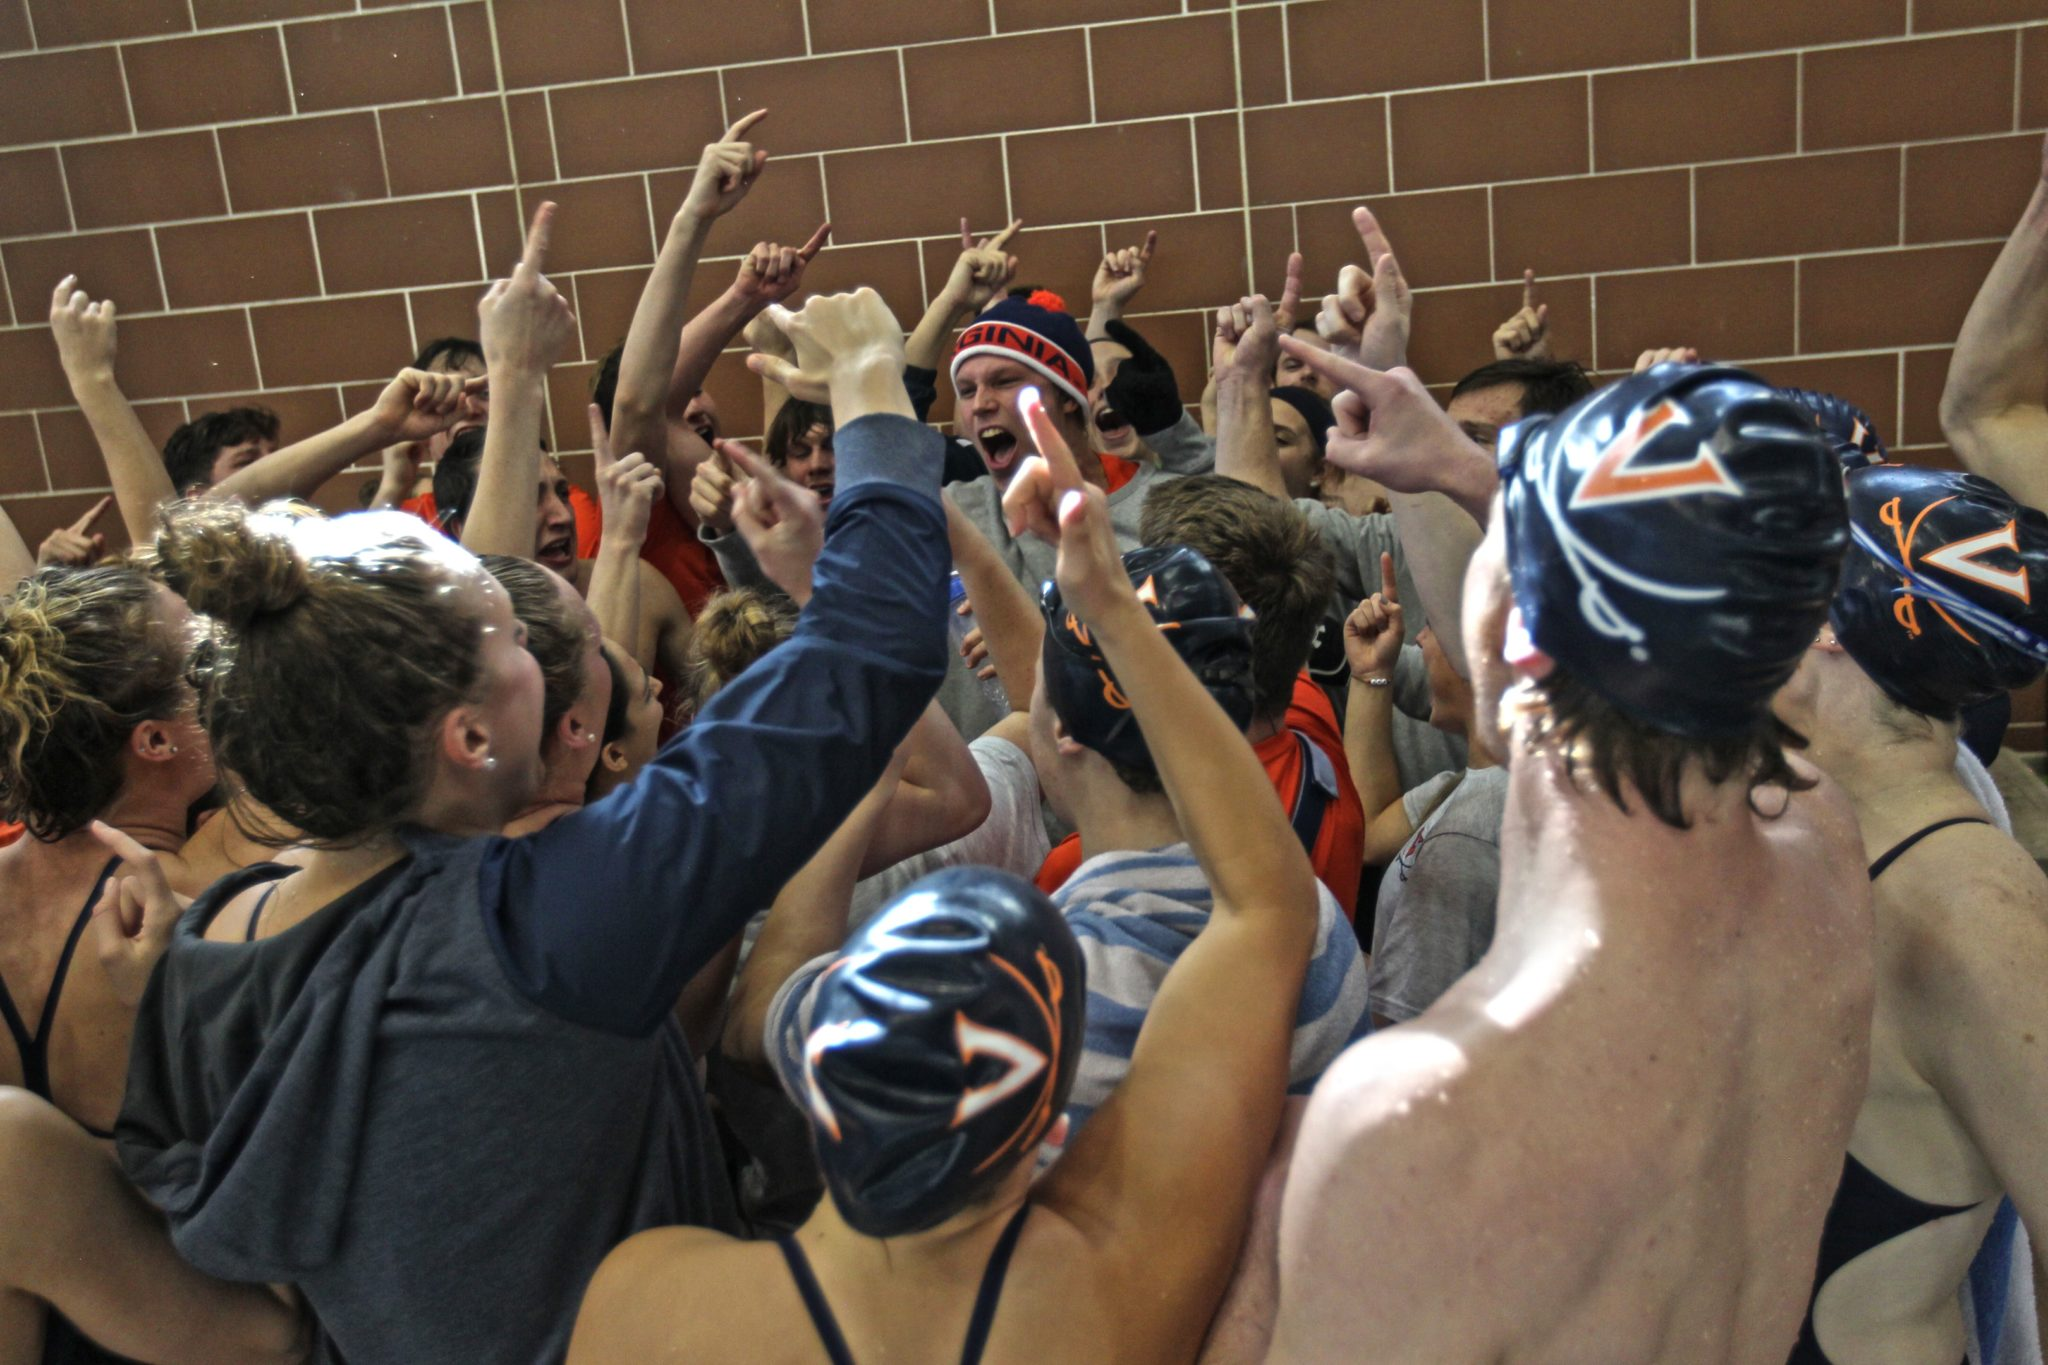 virginia adds two ncaa divers on day 1 of zone a champs